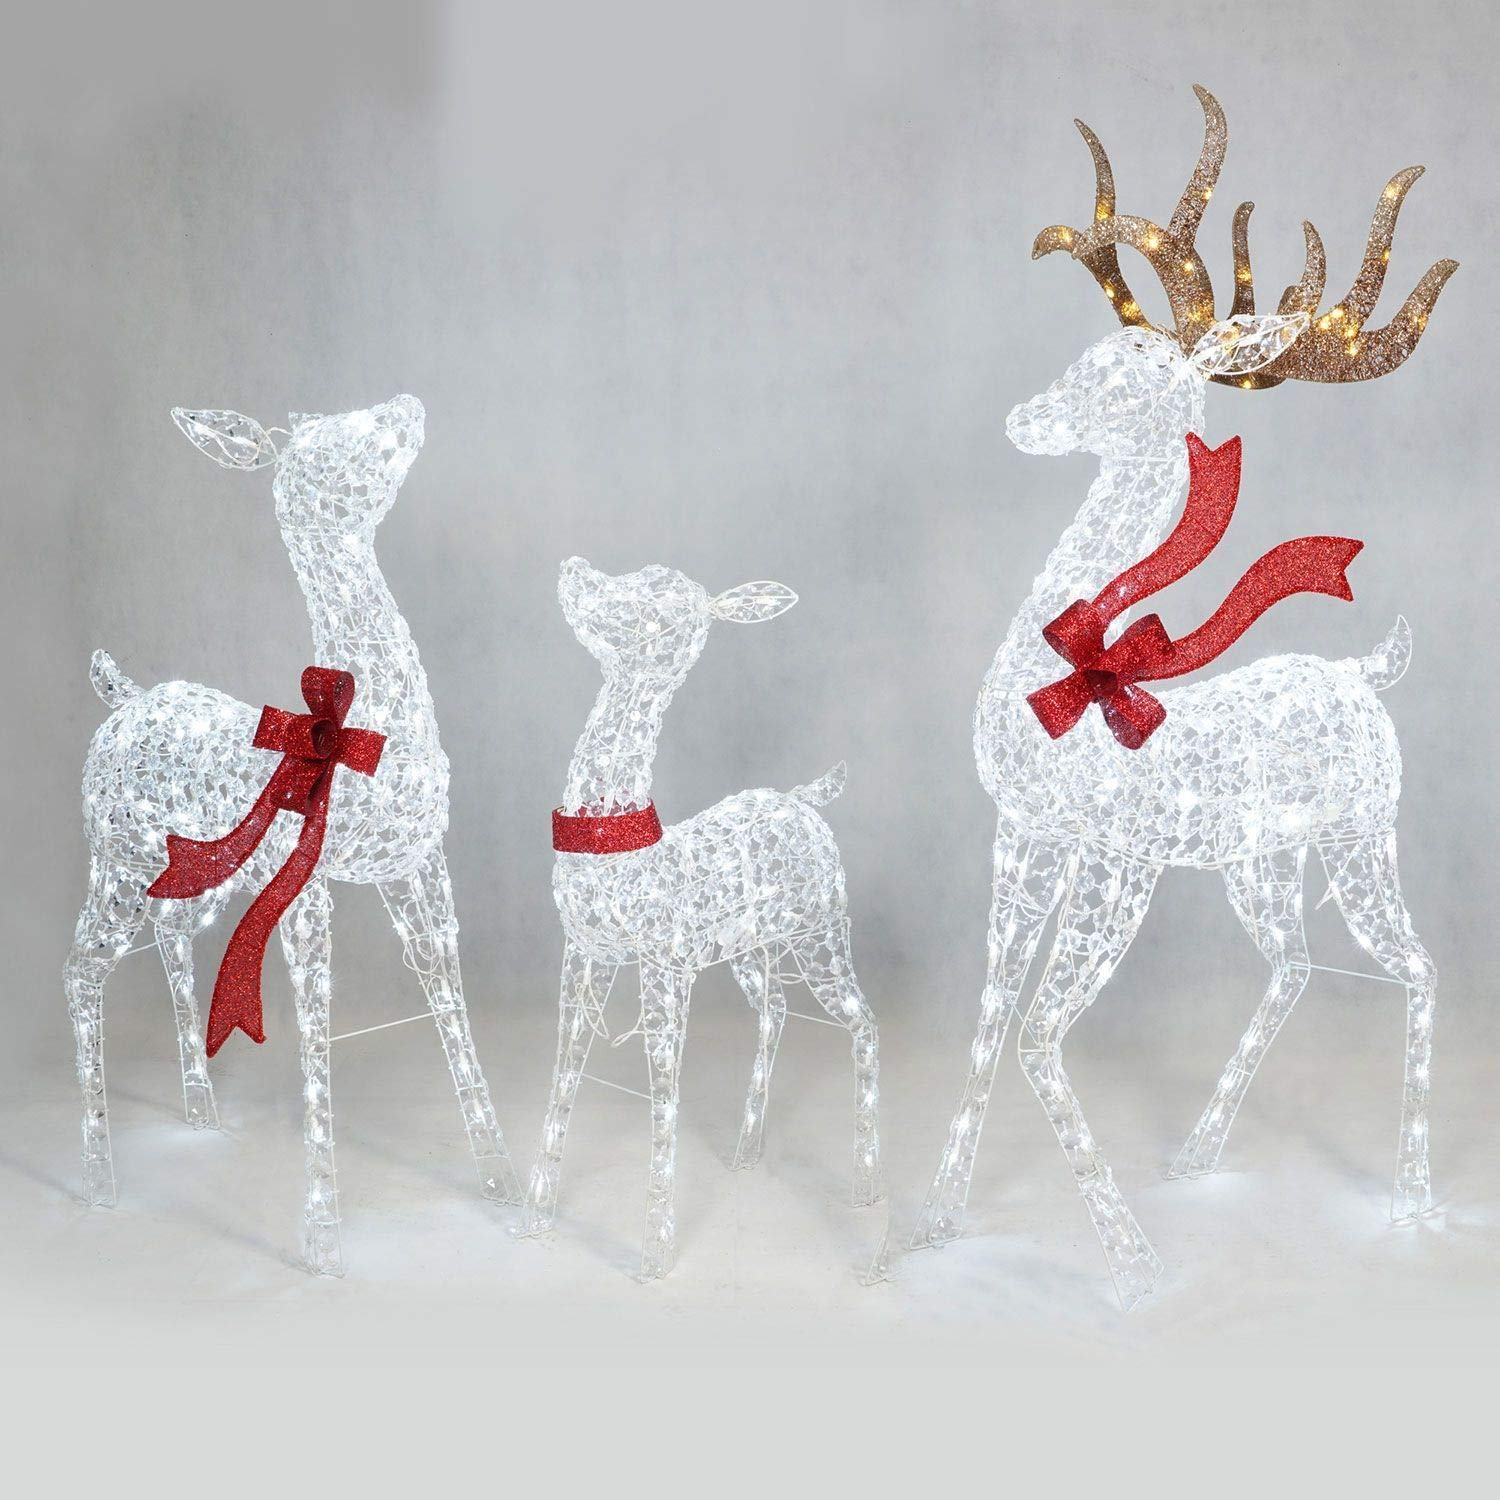 Amazon.com : Set of 3 Crystal Ice LED Lighted Deer Display Outdoor ...